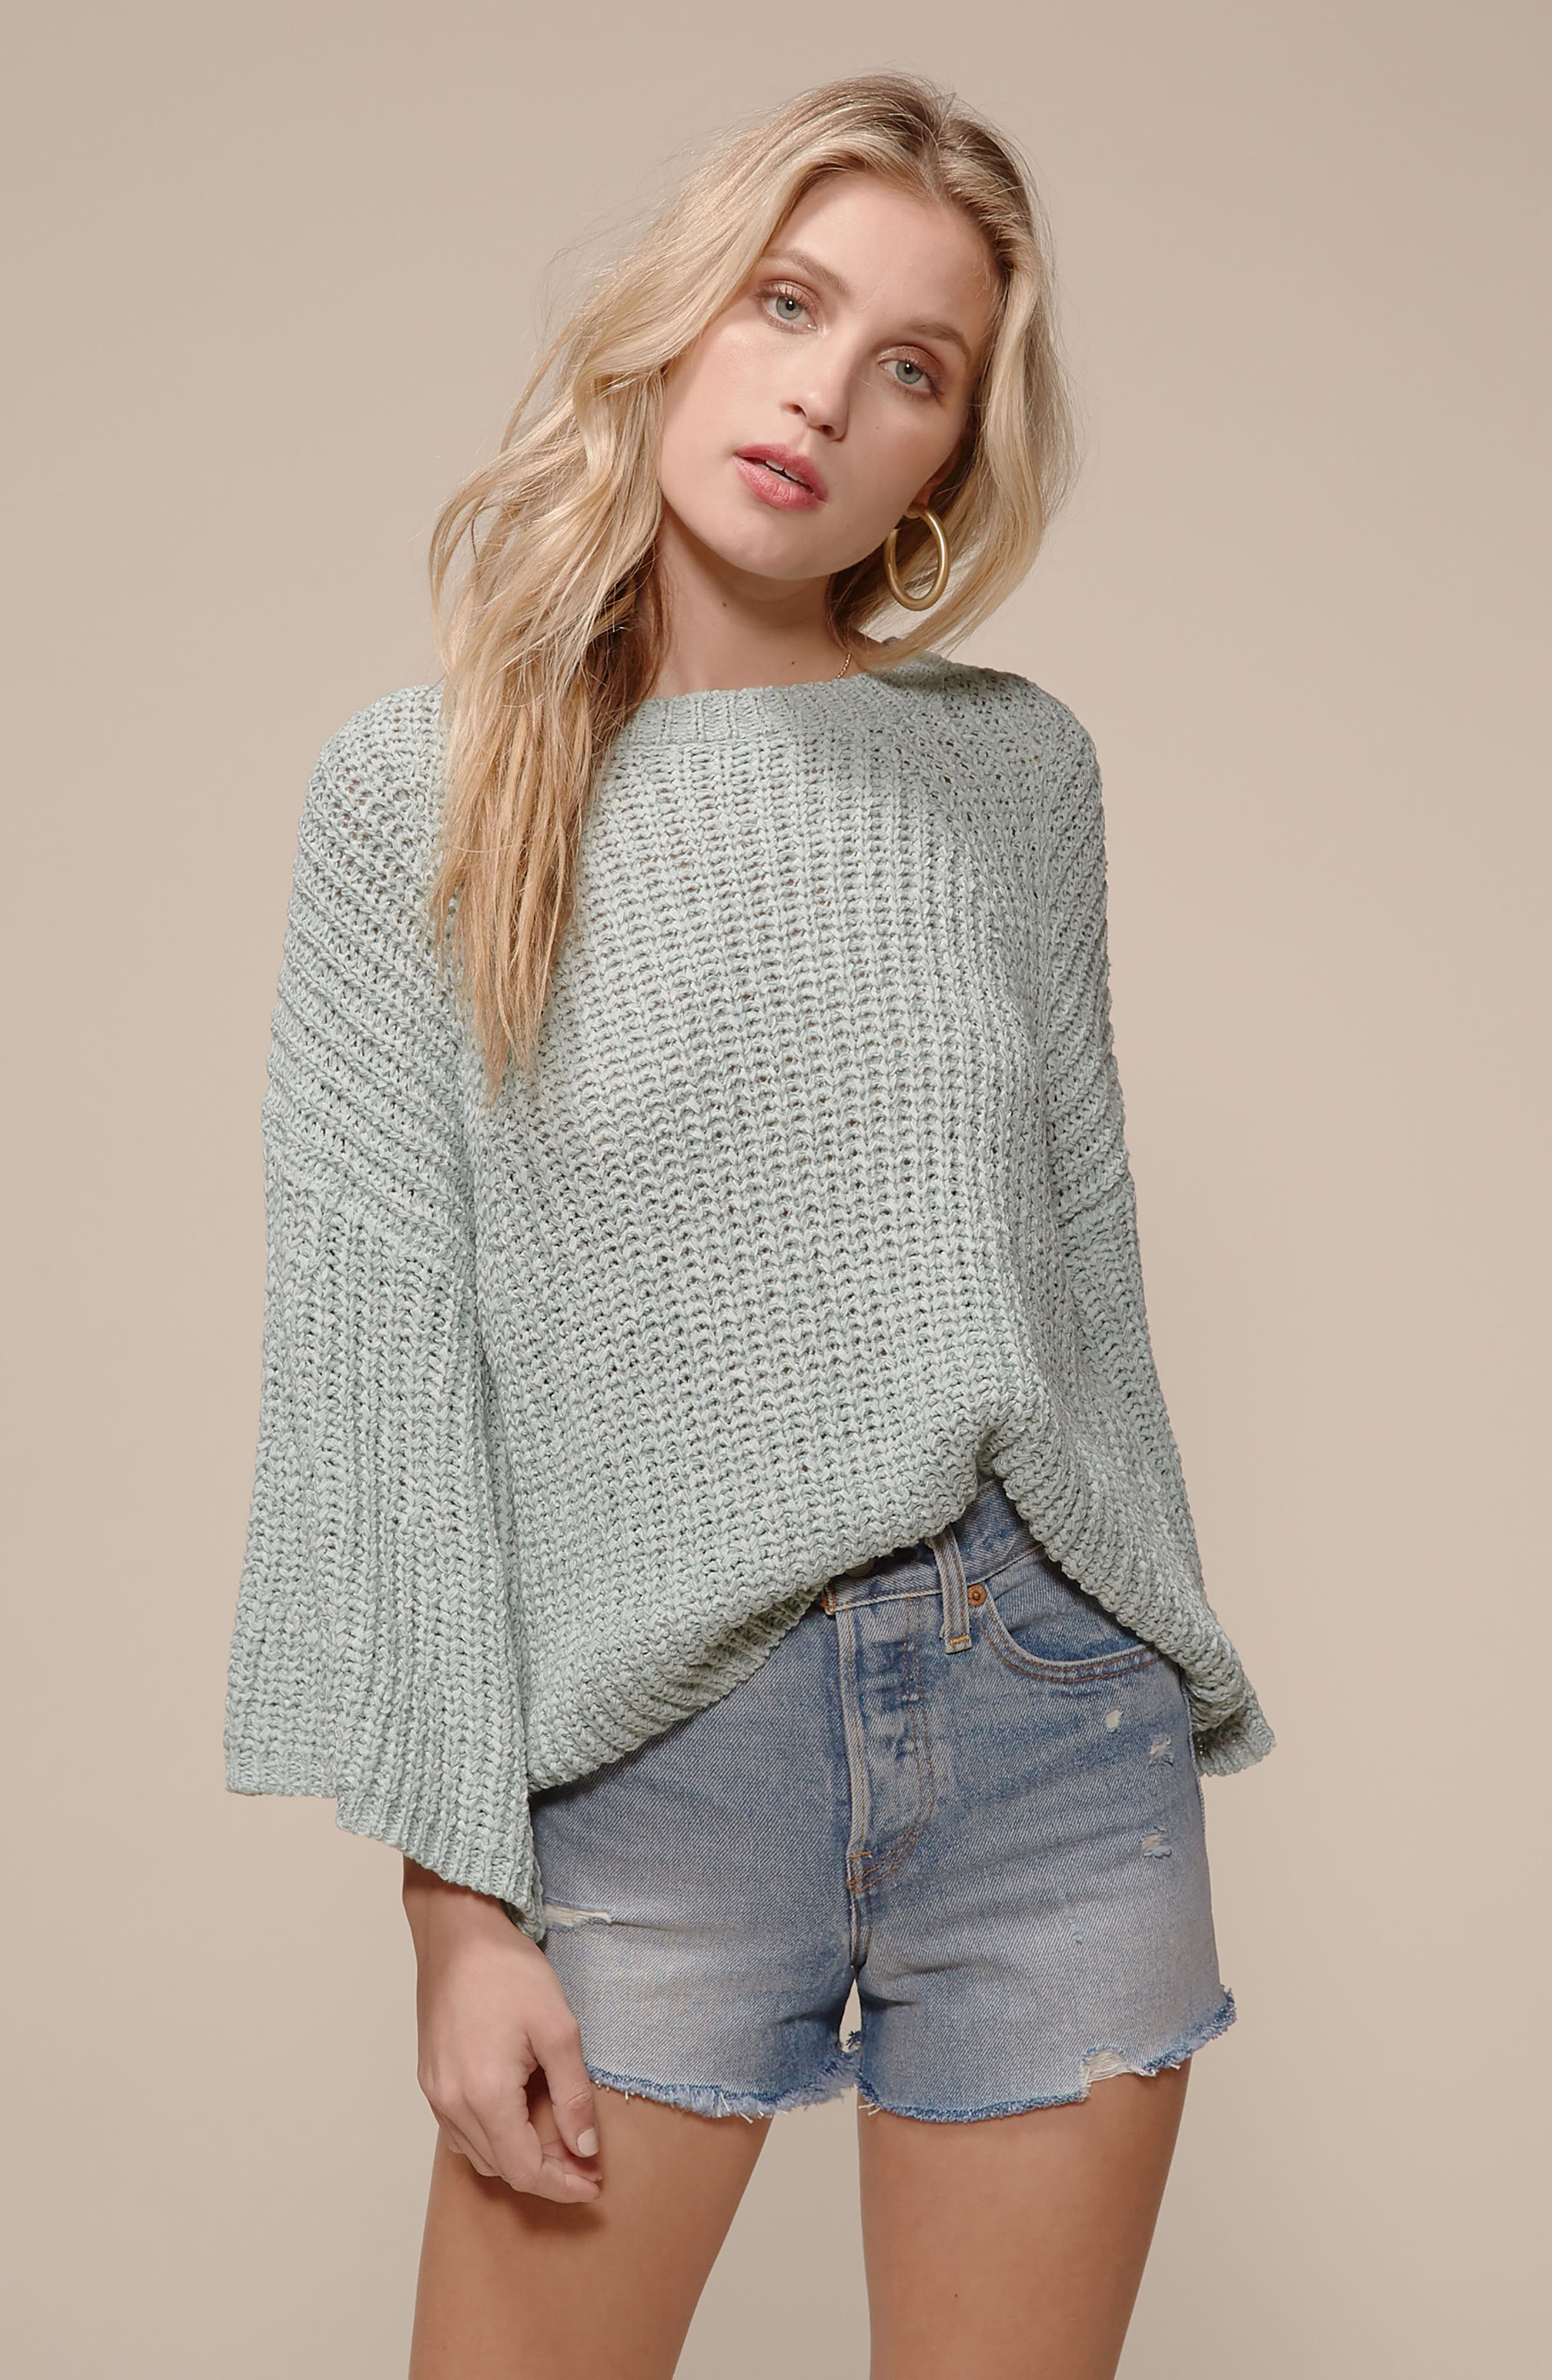 Bell Sleeve Sweater,                             Alternate thumbnail 9, color,                             280